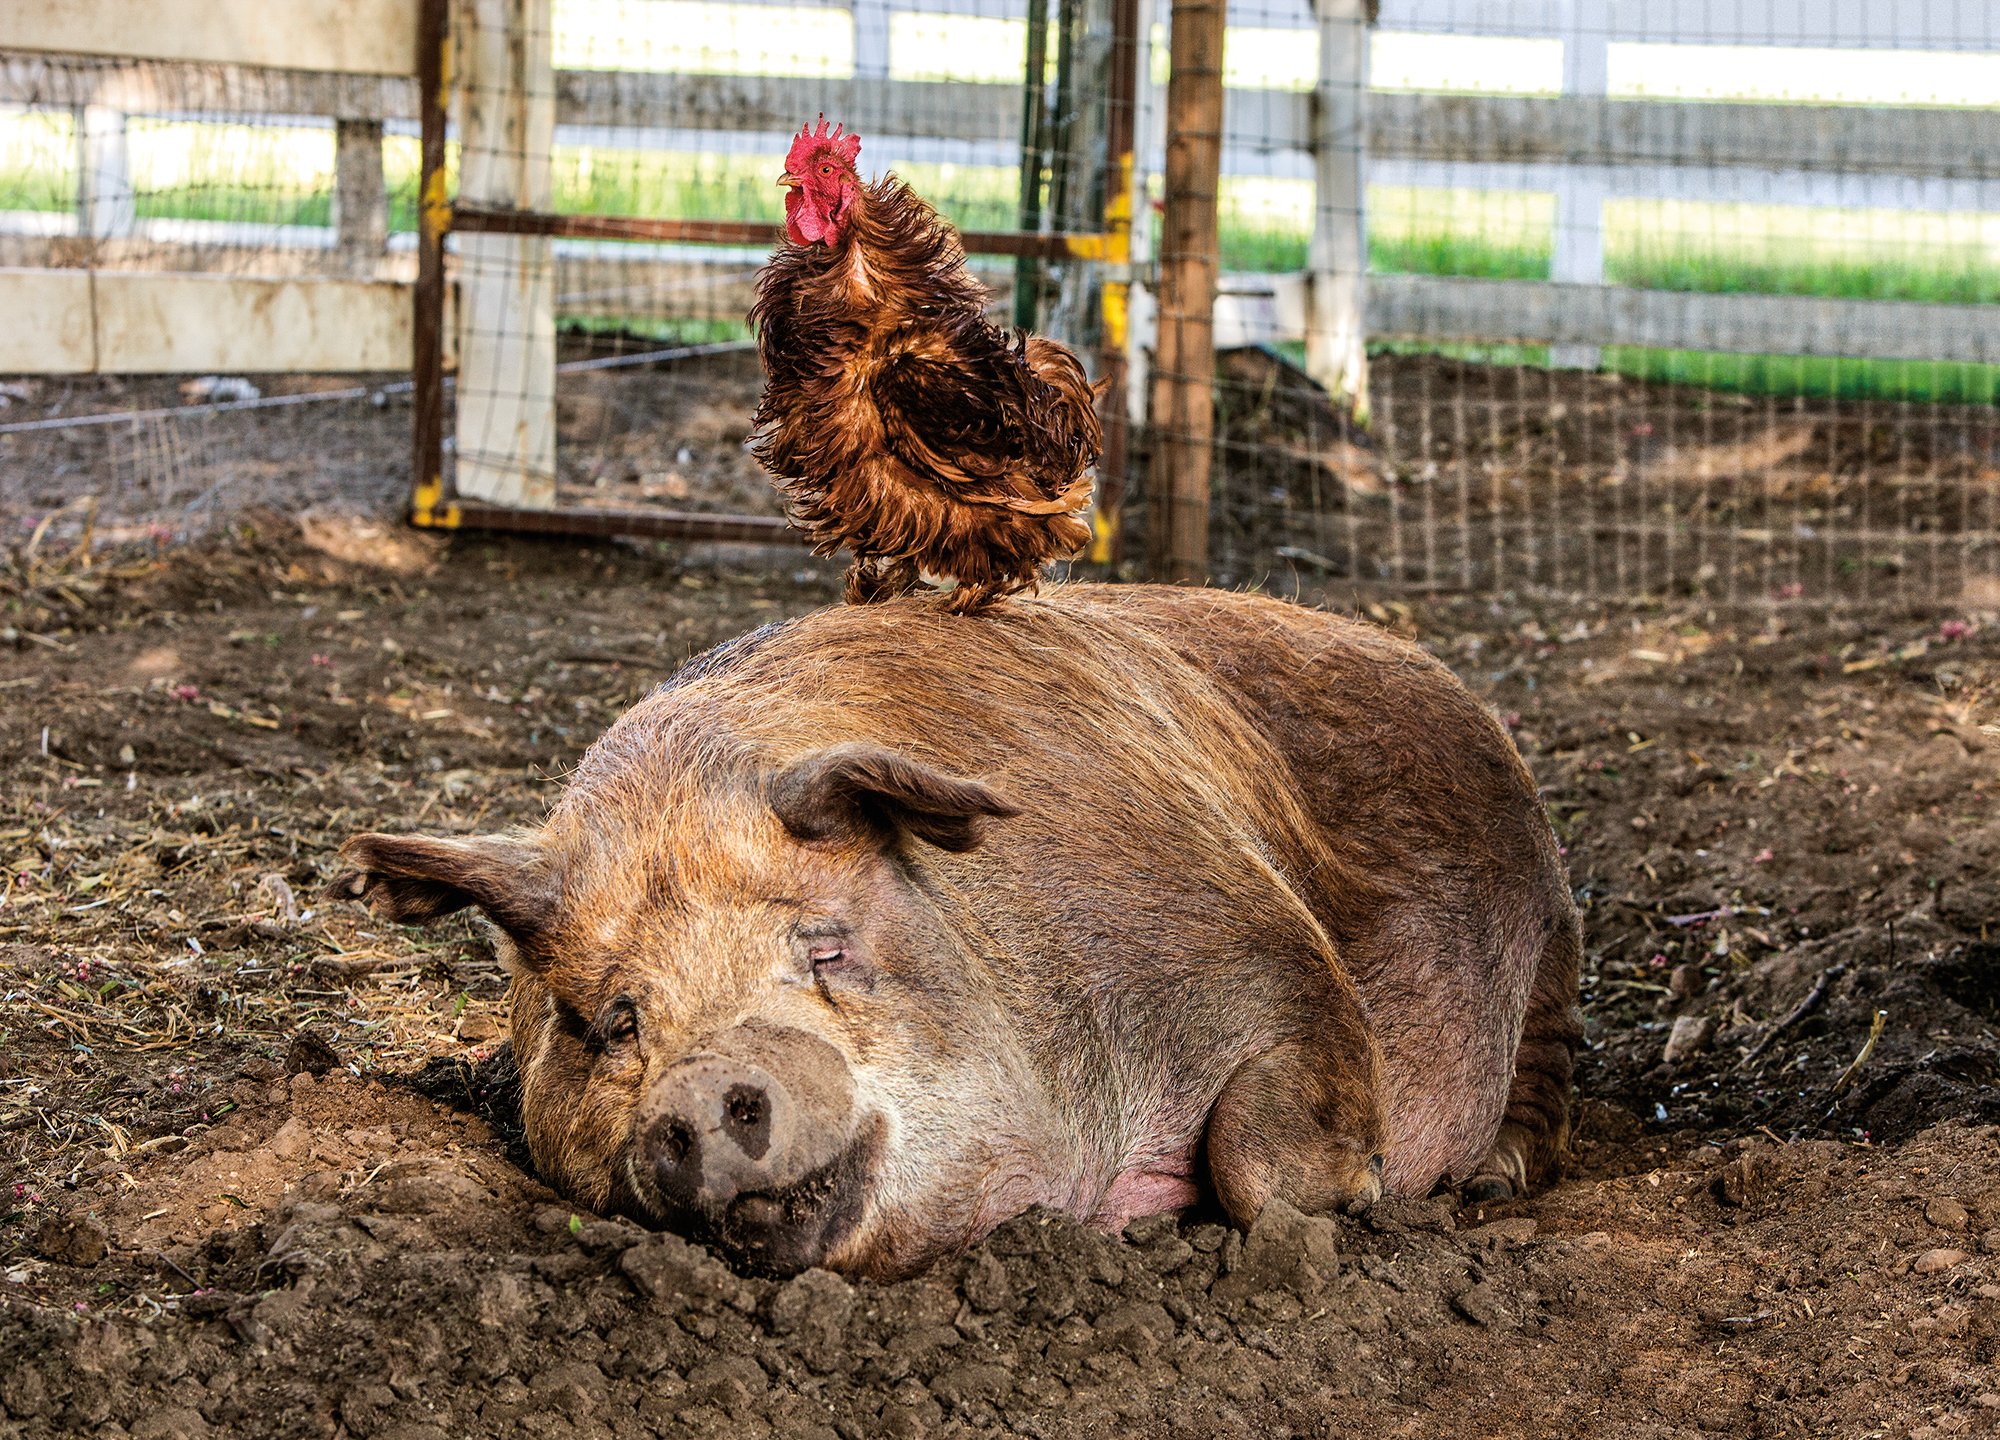 A pig and a rooster relaxes on John and Molly's farm.